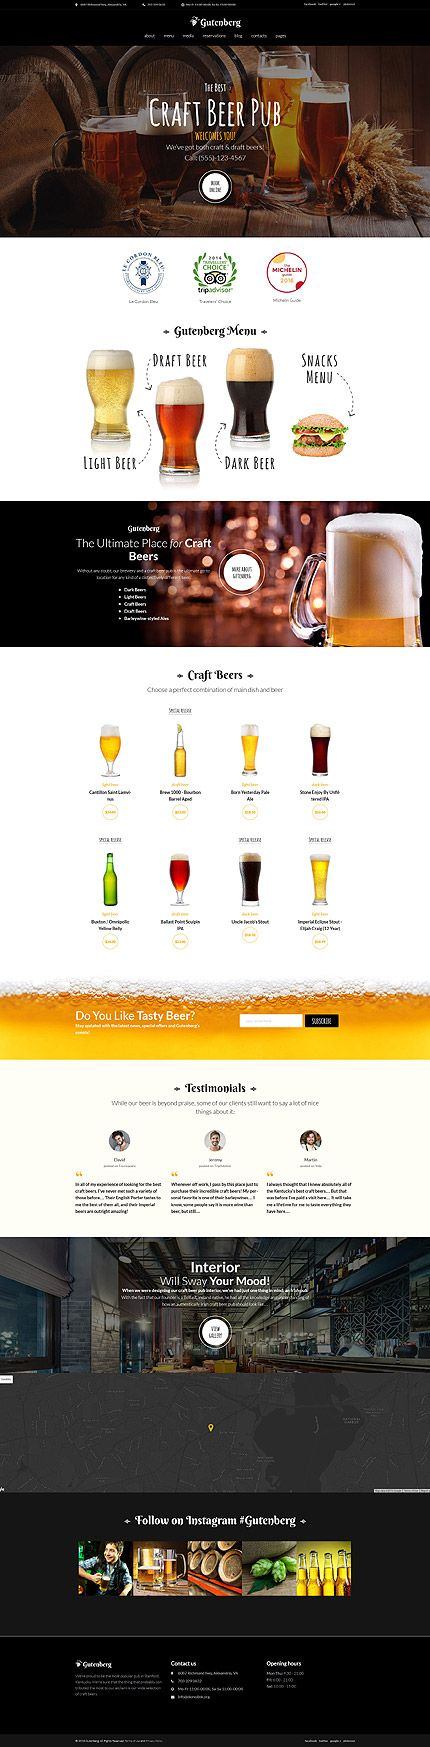 Craft Beer Pub #Wordpress #template. #themes #business #responsive #Wordpressthemes